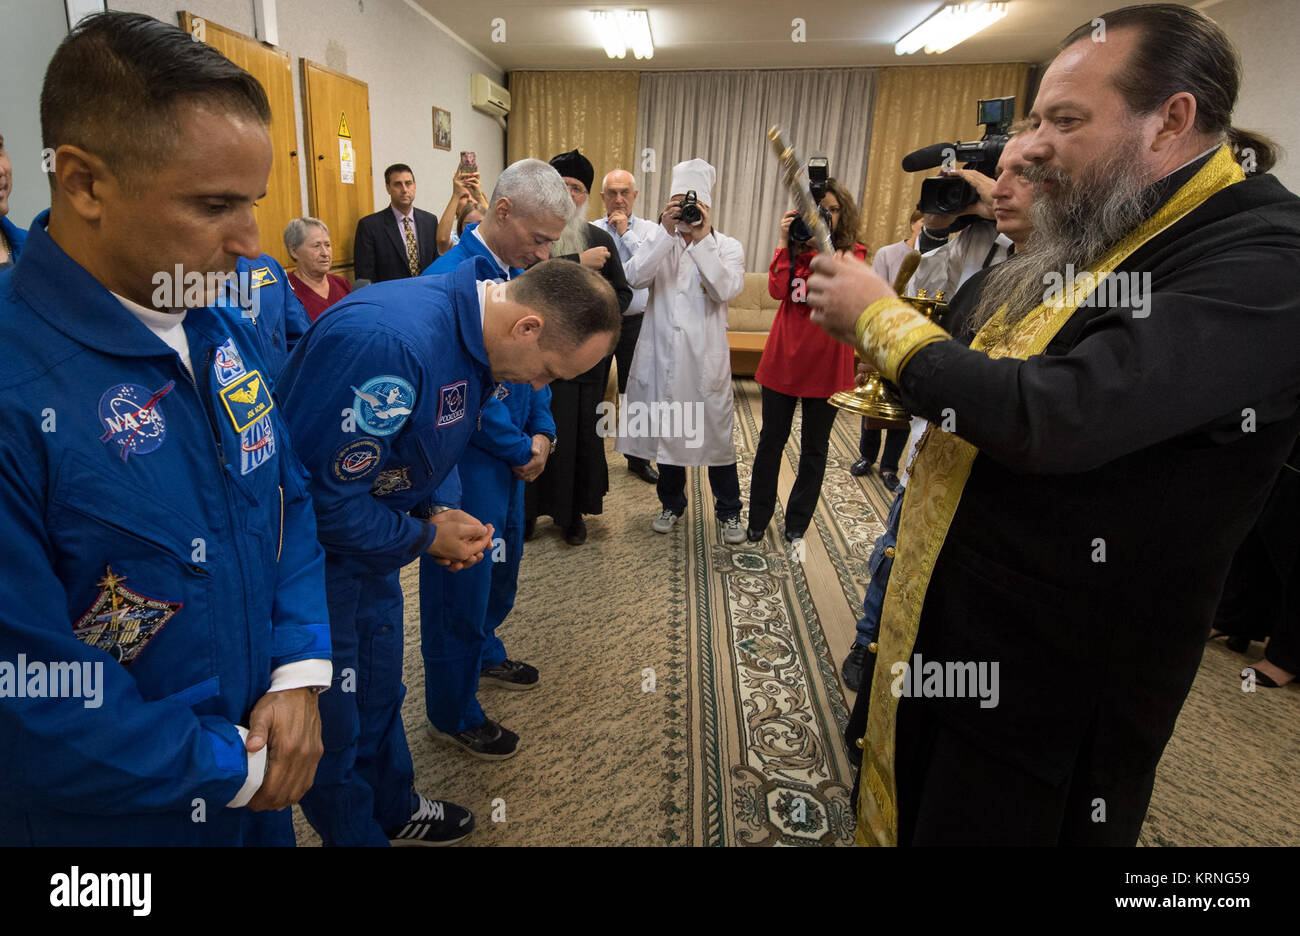 Russian Orthodox Priest, father Sergei, right, blesses Expedition 53 crewmembers Joe Acaba of NASA, left, Alexander - Stock Image